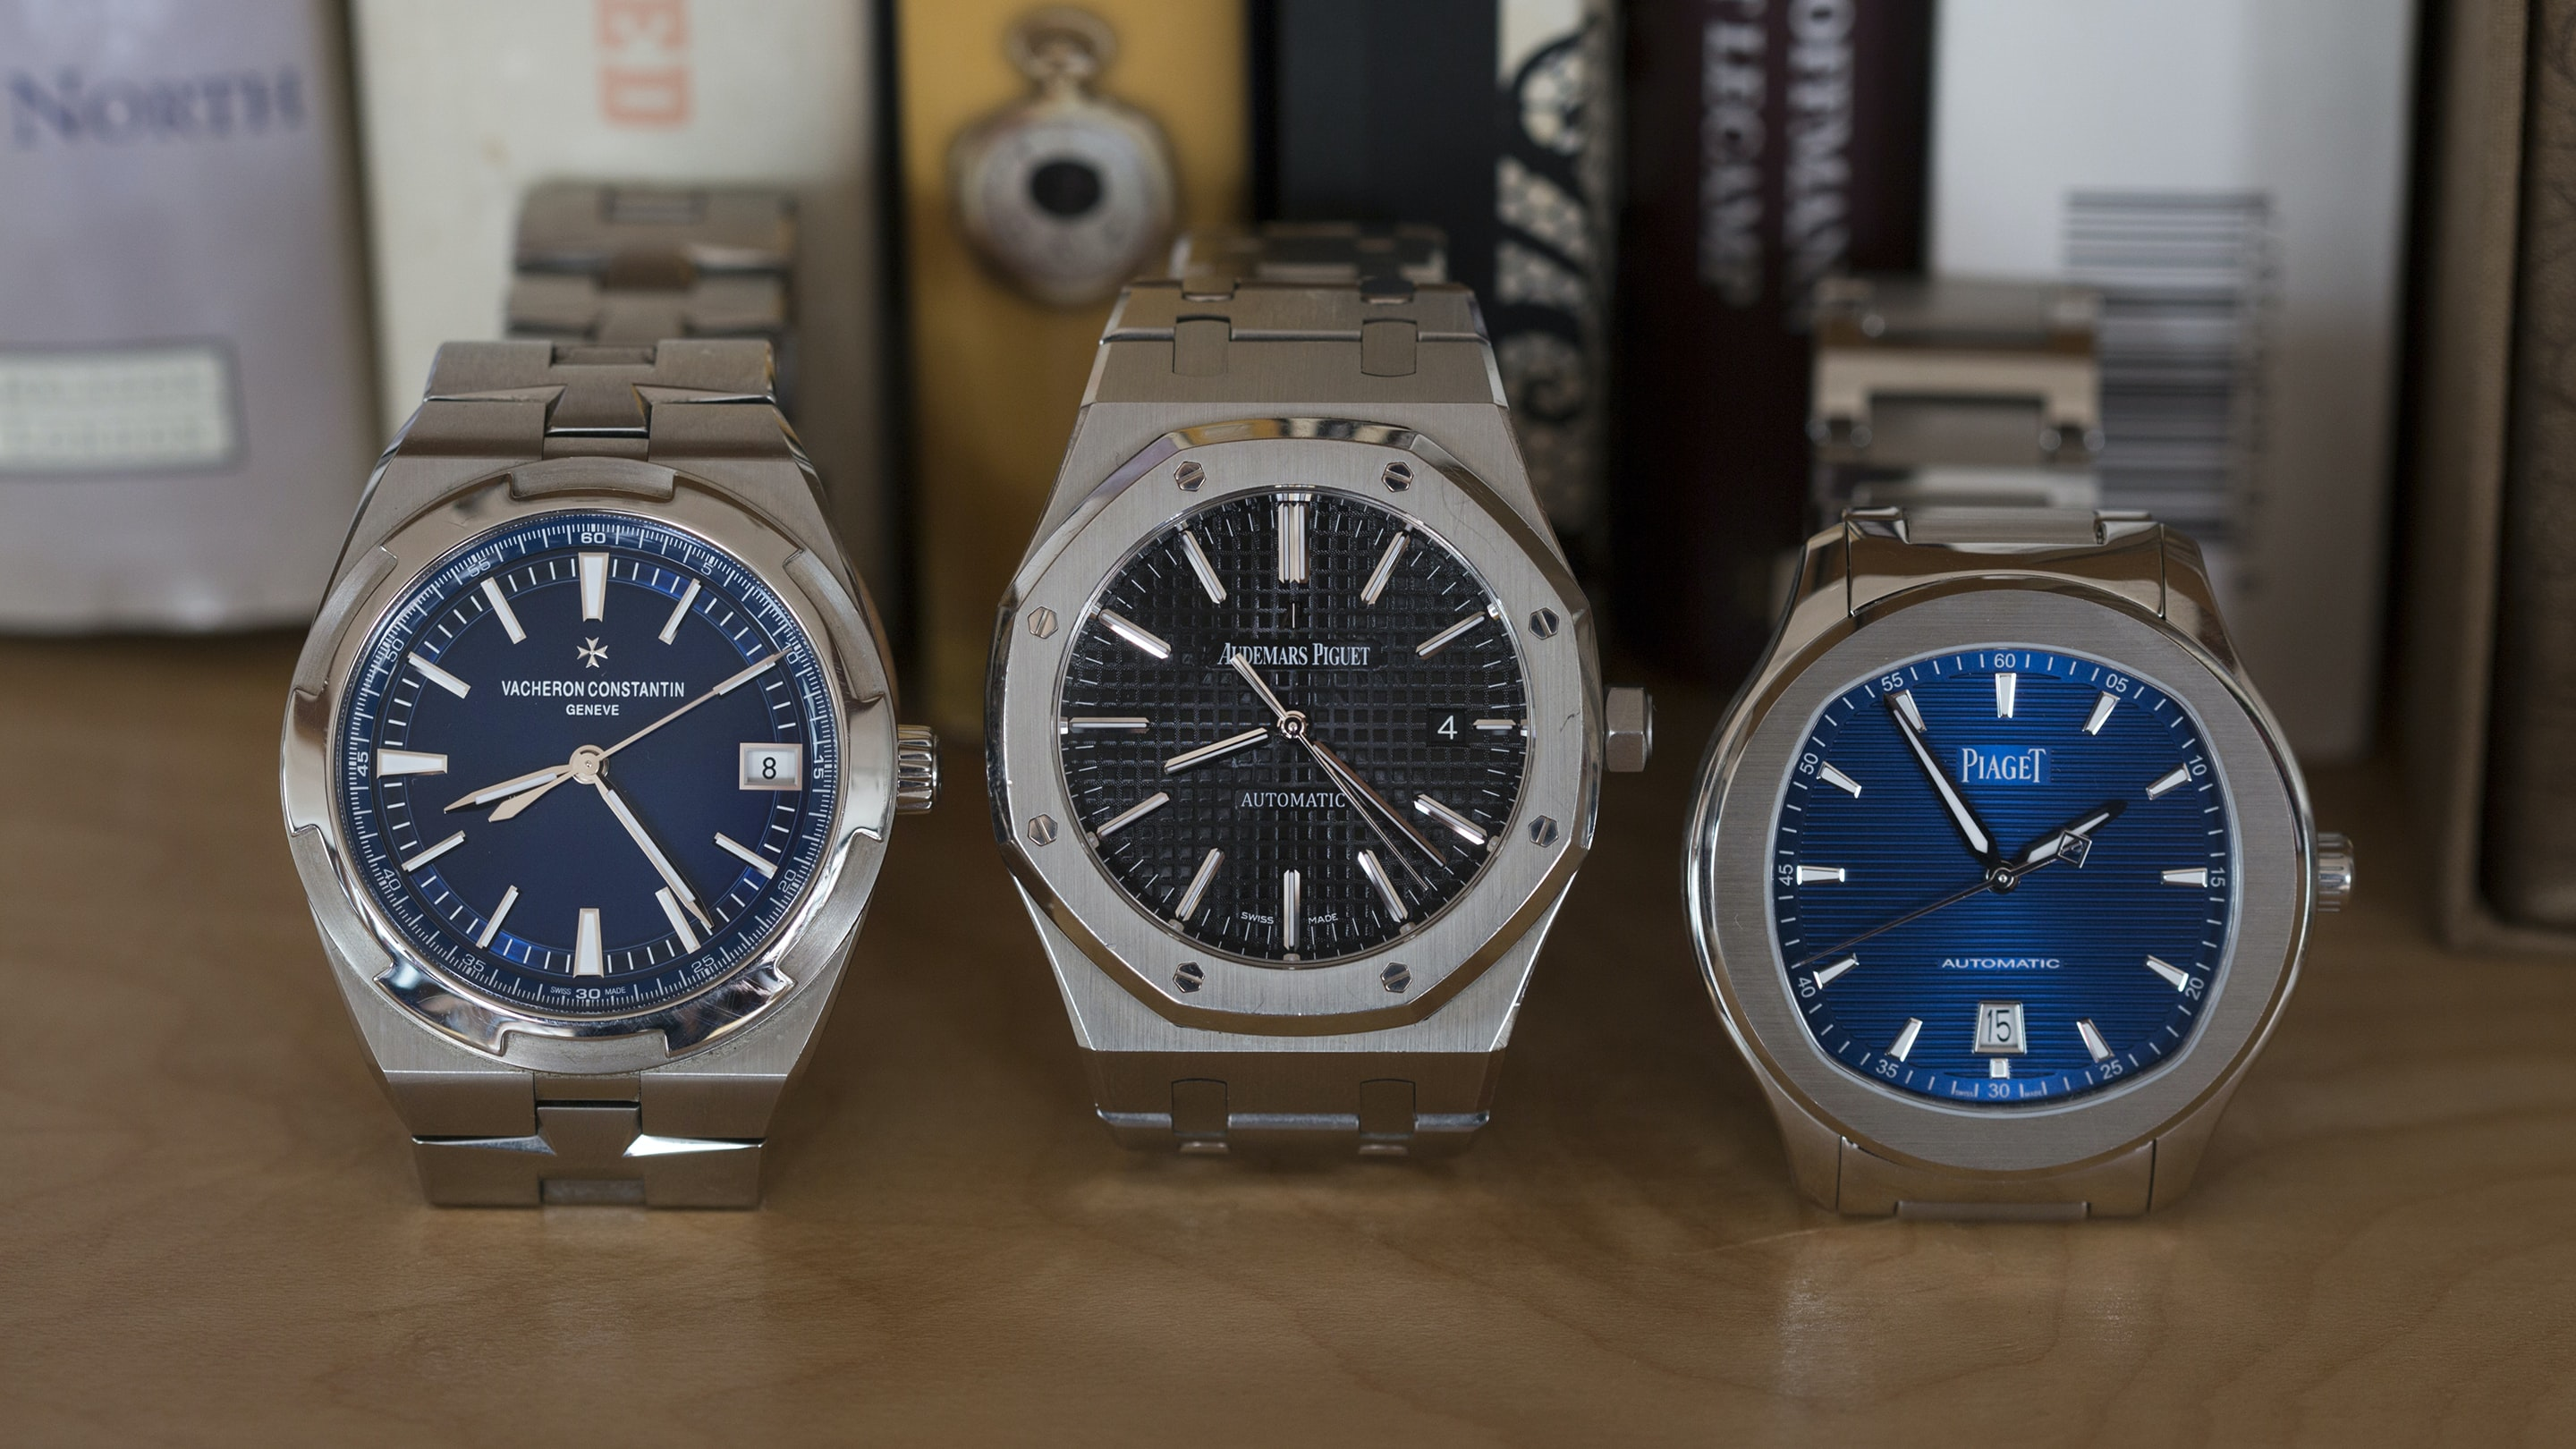 Three On Three: Comparing The Vacheron Constantin Overseas, The Piaget Polo S, And The Audemars Piguet Royal Oak 15400